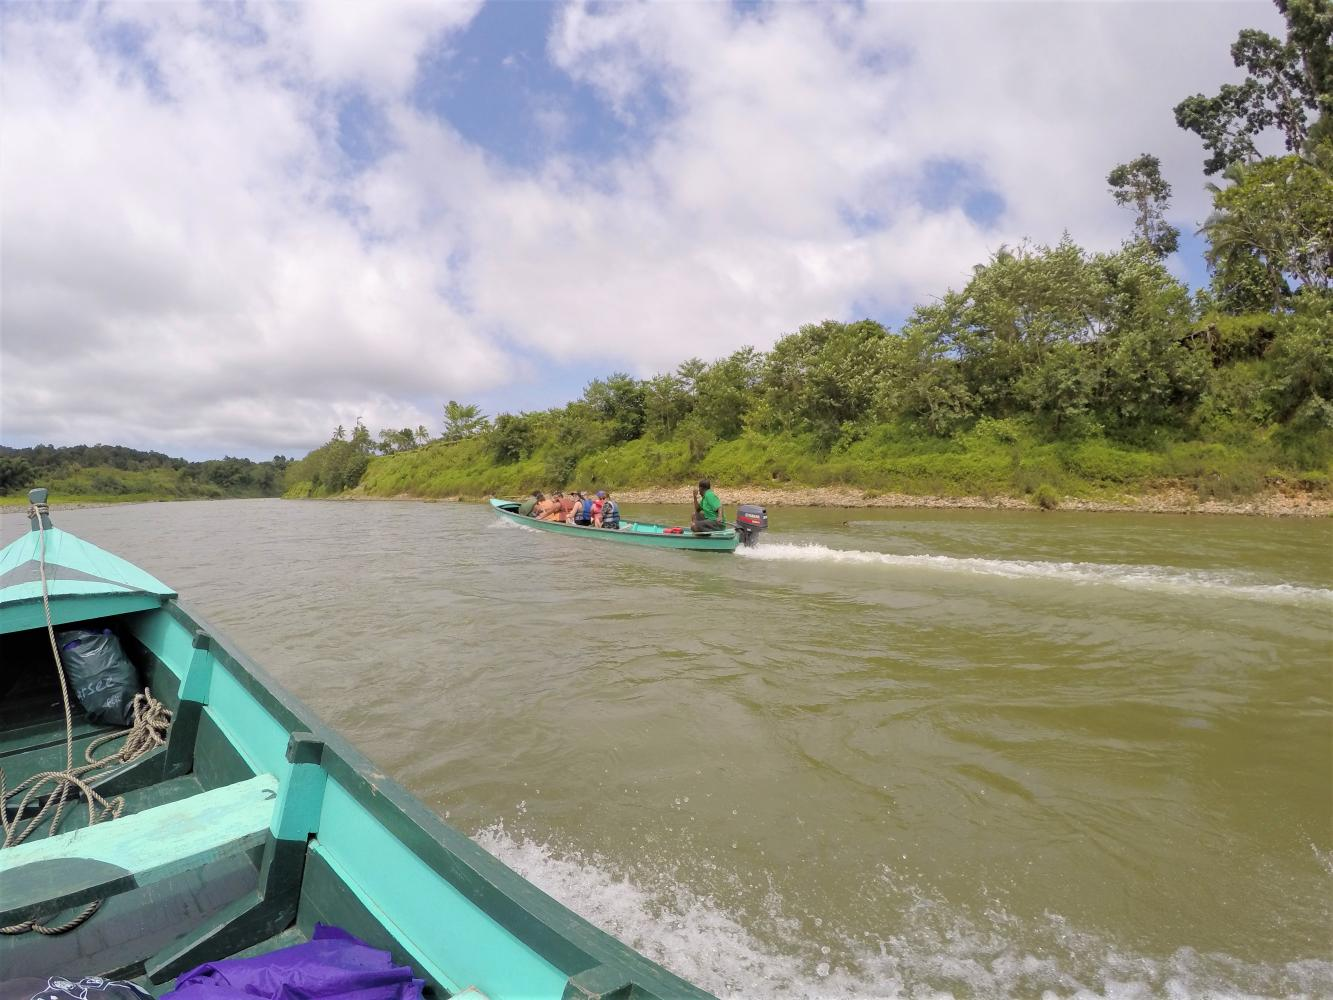 Jewel of Fiji River and waterfall tour with village tour in Fiji